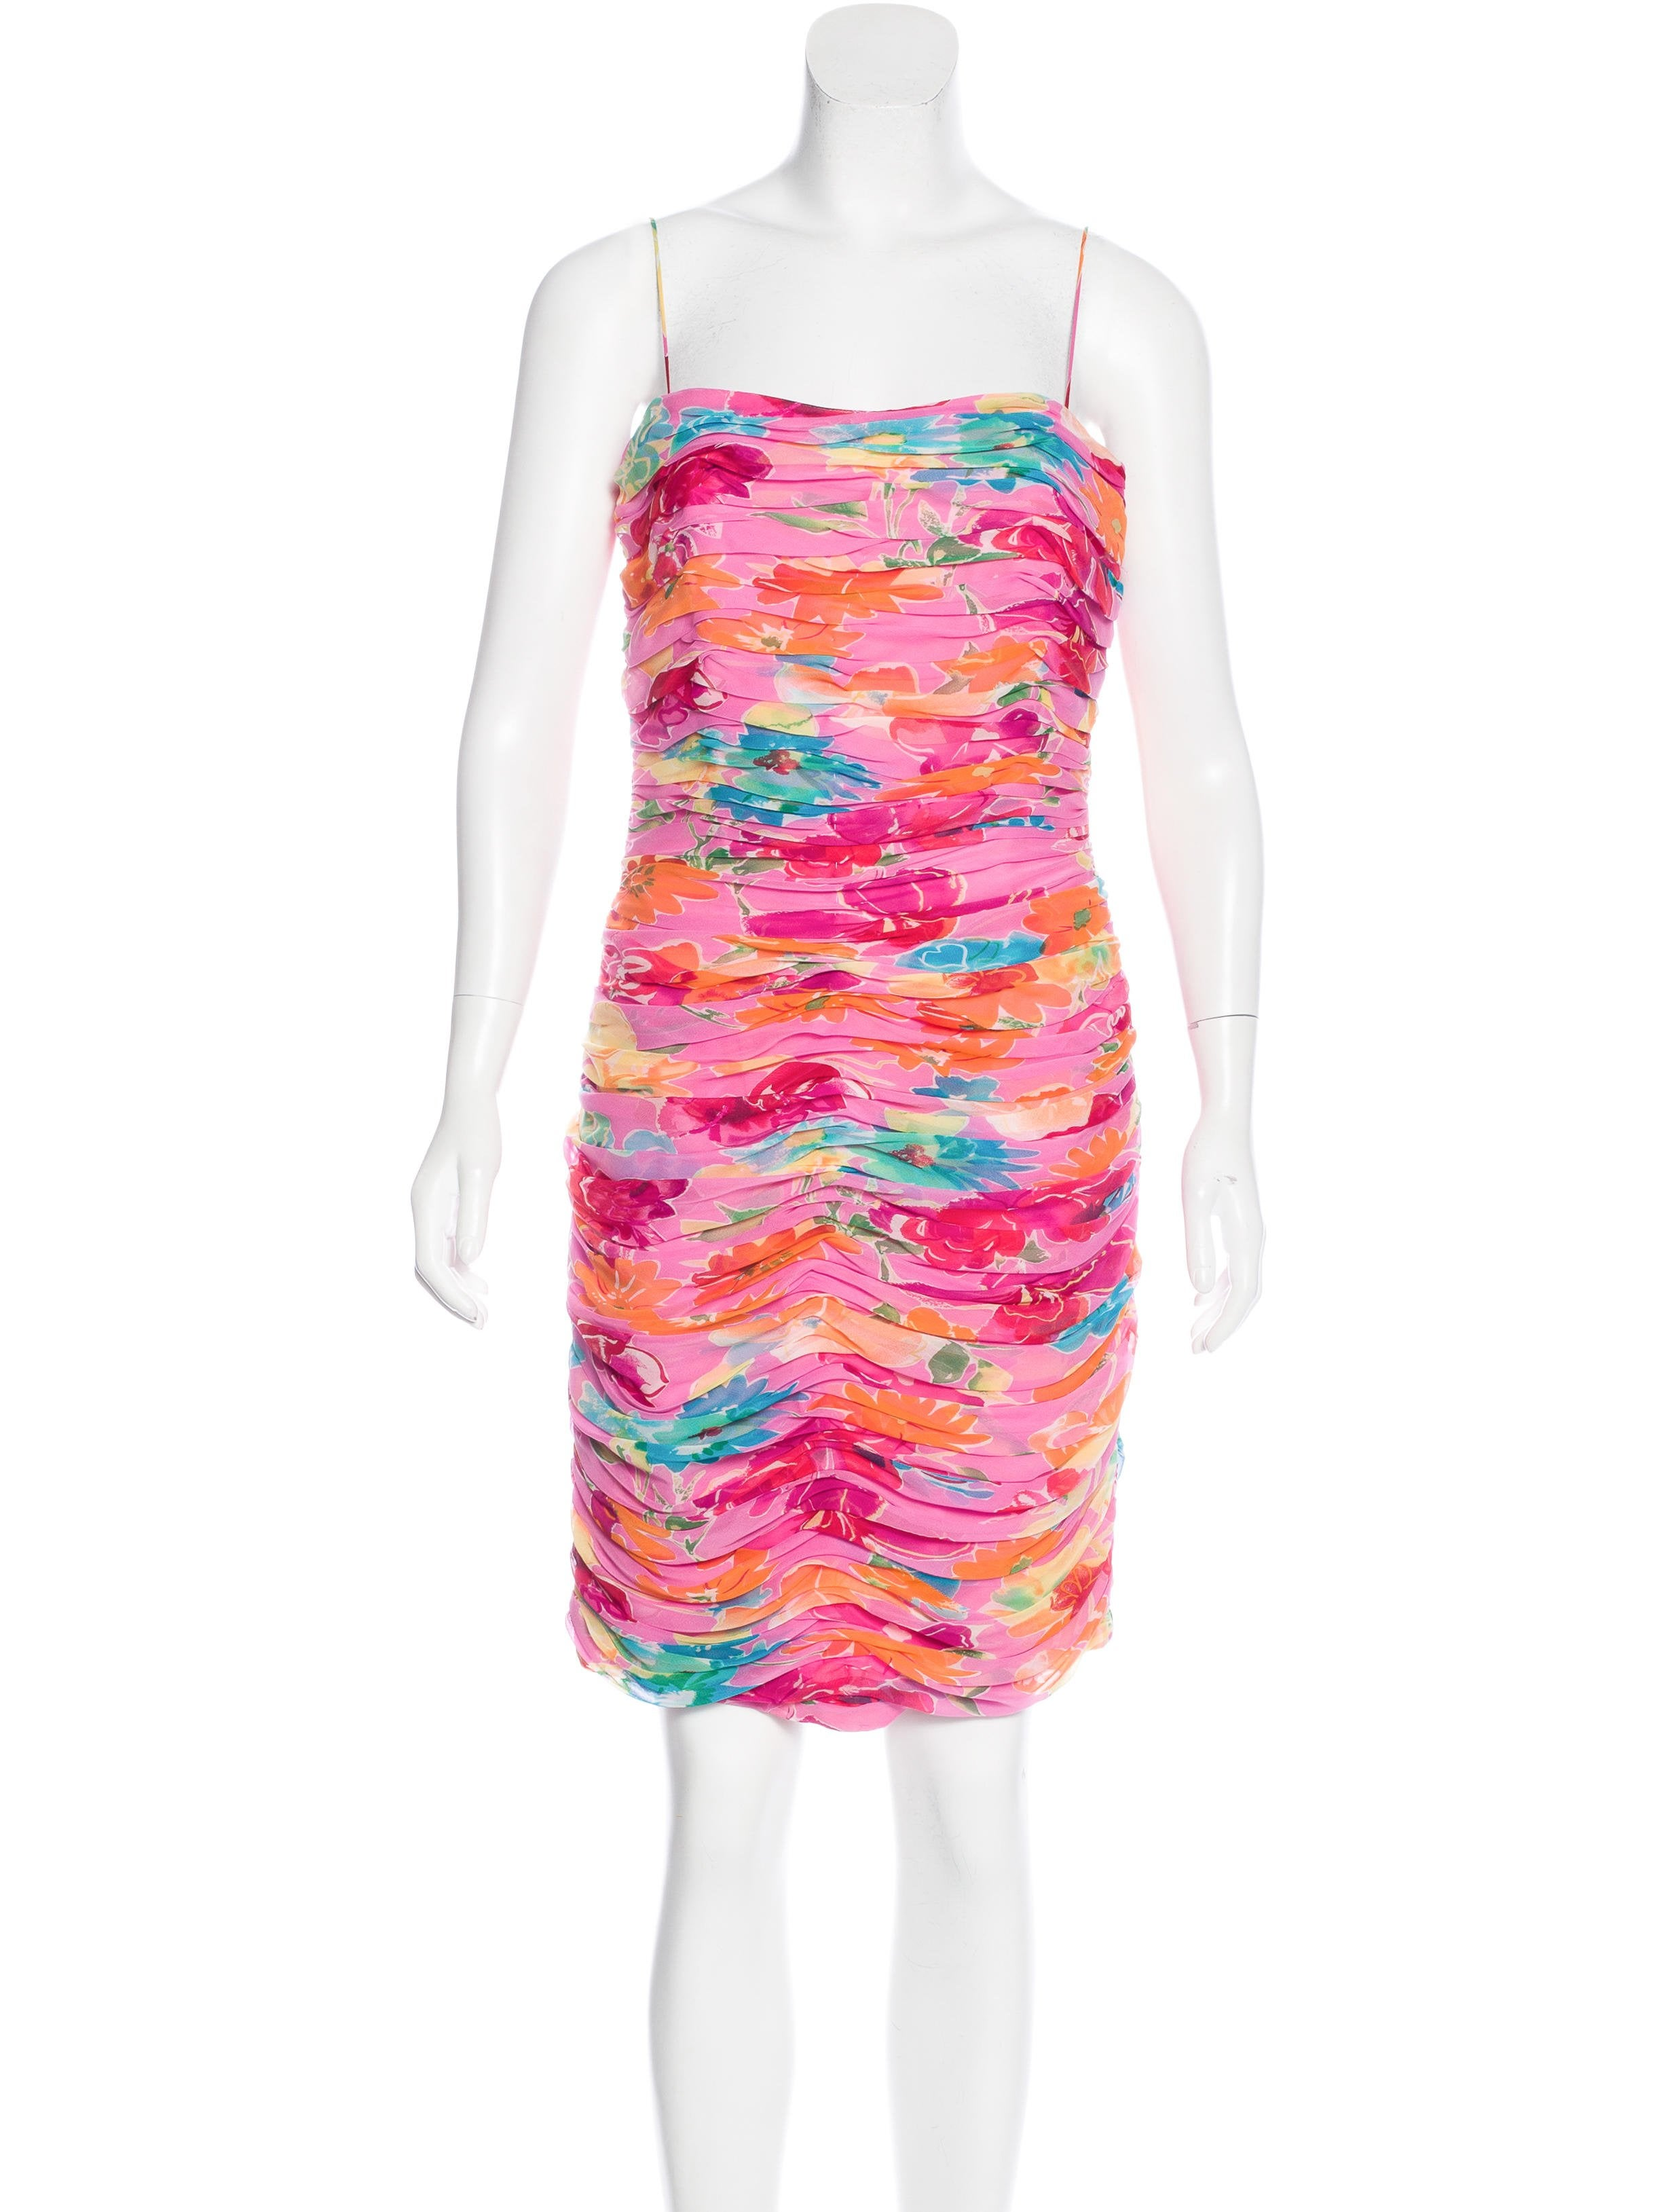 David Meister Silk Floral Print Dress - Clothing - WDM25170 | The ...